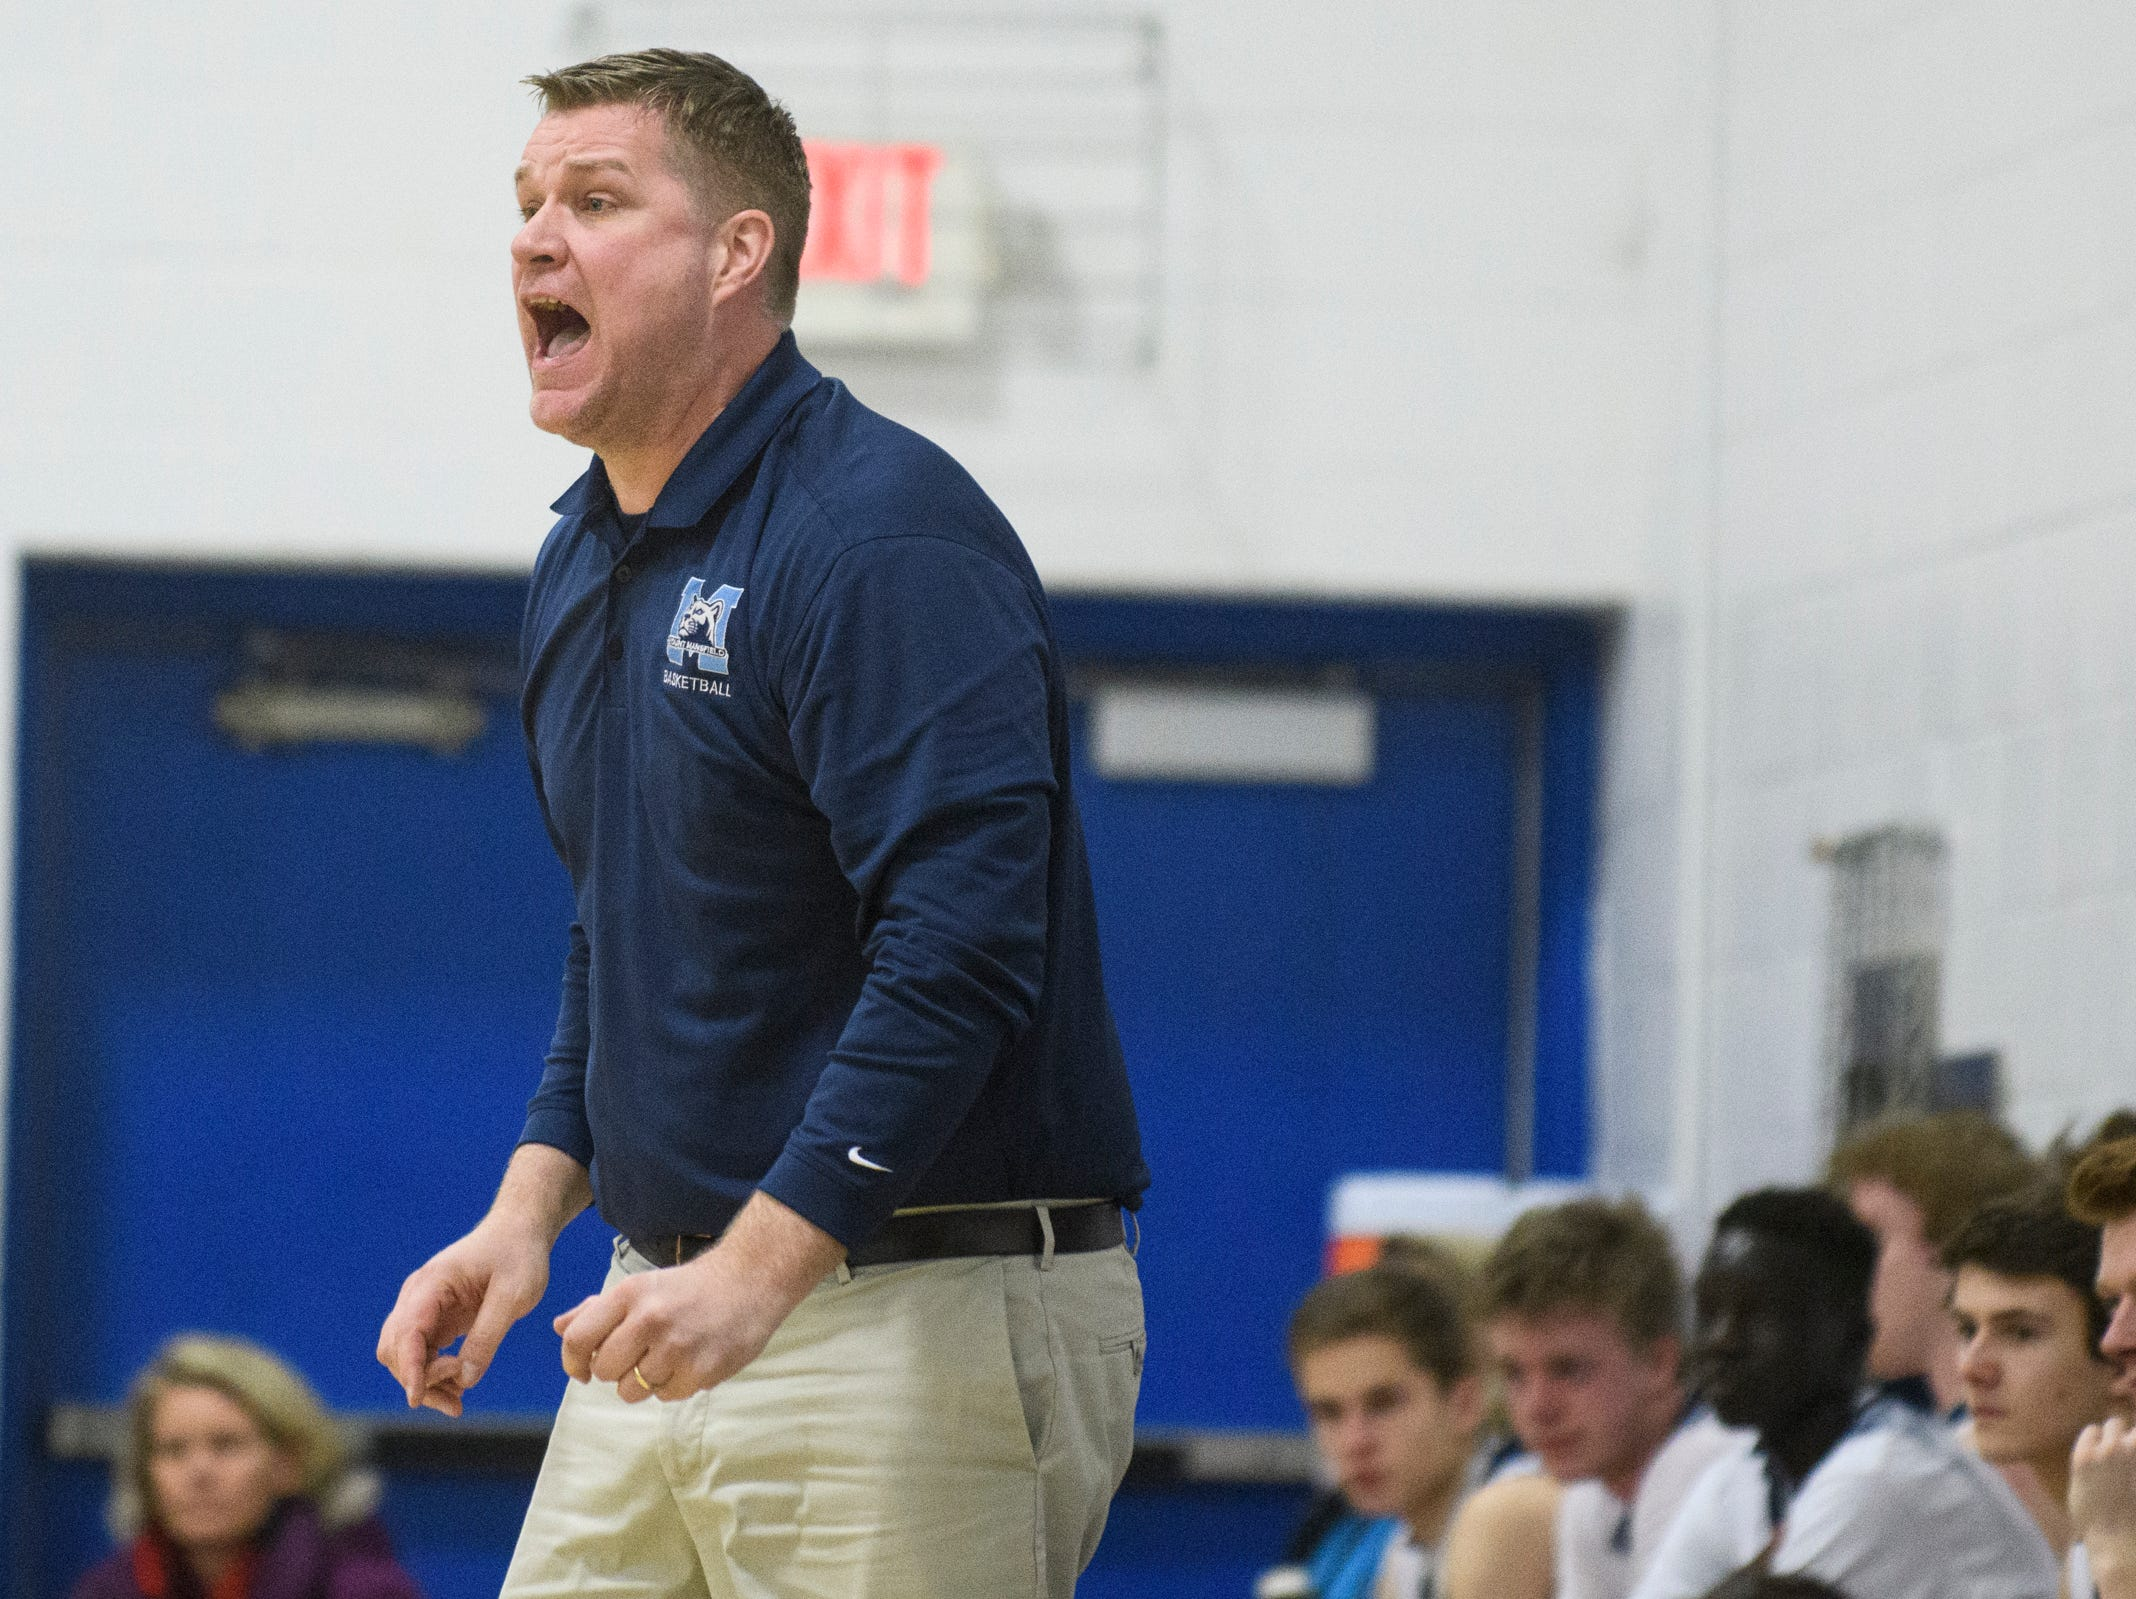 MMU head coach Jeff Davis talks to the team on the court during the boys basketball game between the Essex Hornets and the Mount Mansfield Cougars at MMU High School on Wednesday night February 13, 2019 in Jericho, Vermont.